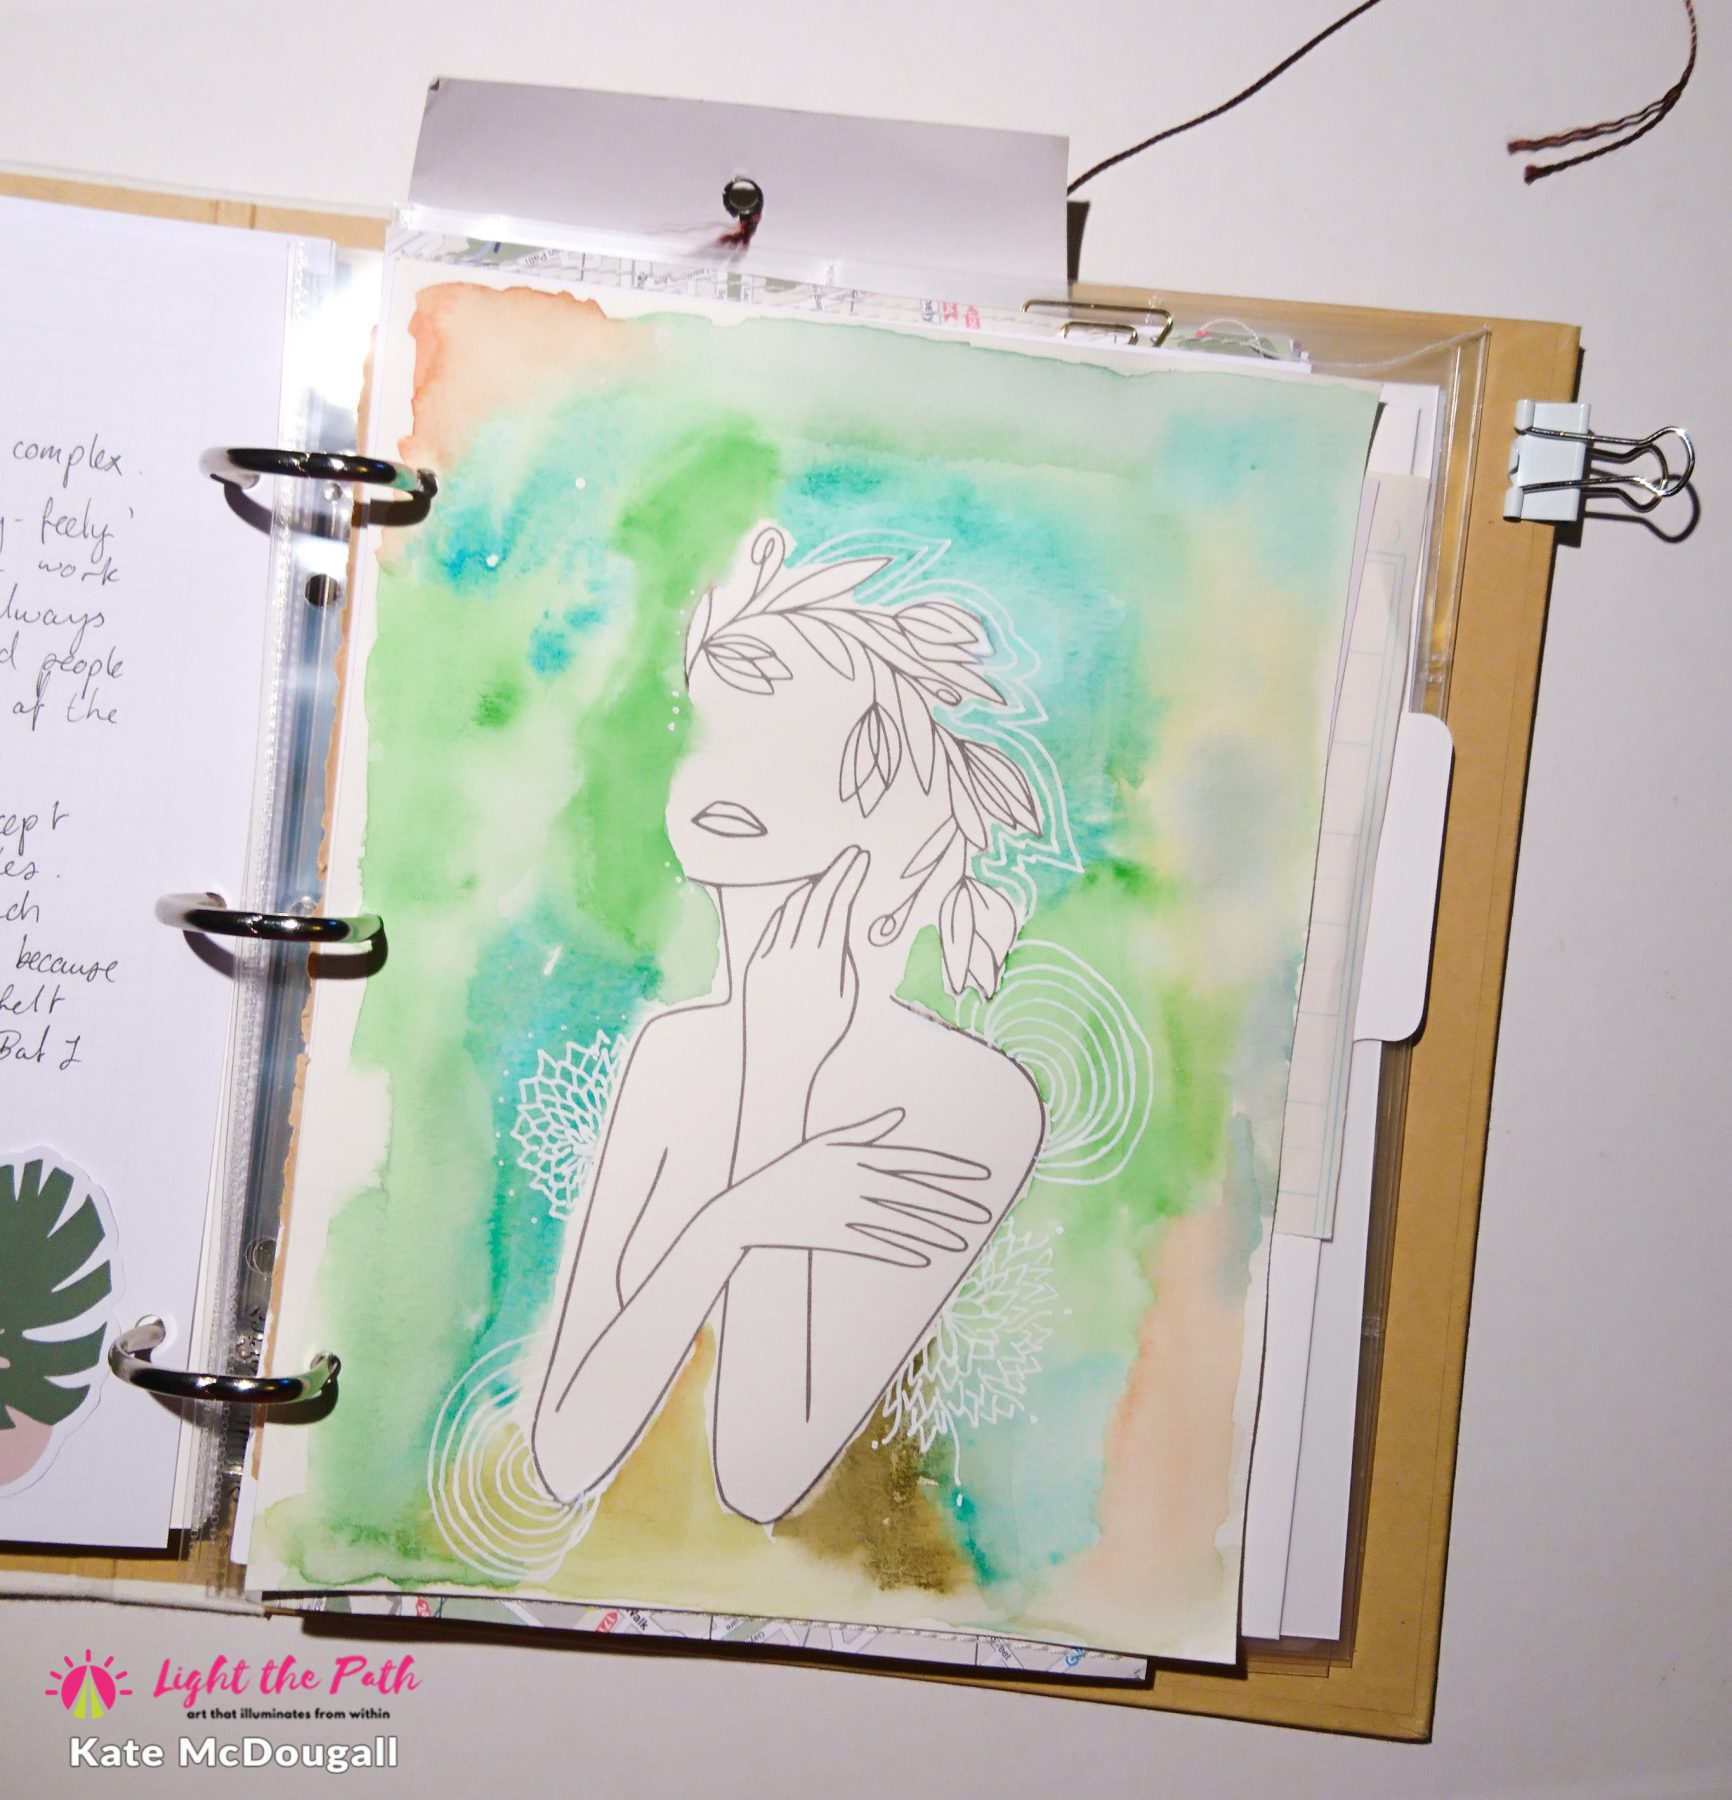 A painted page featuring a line art of a feminine figure, on a background of green and blue watercolour effects.